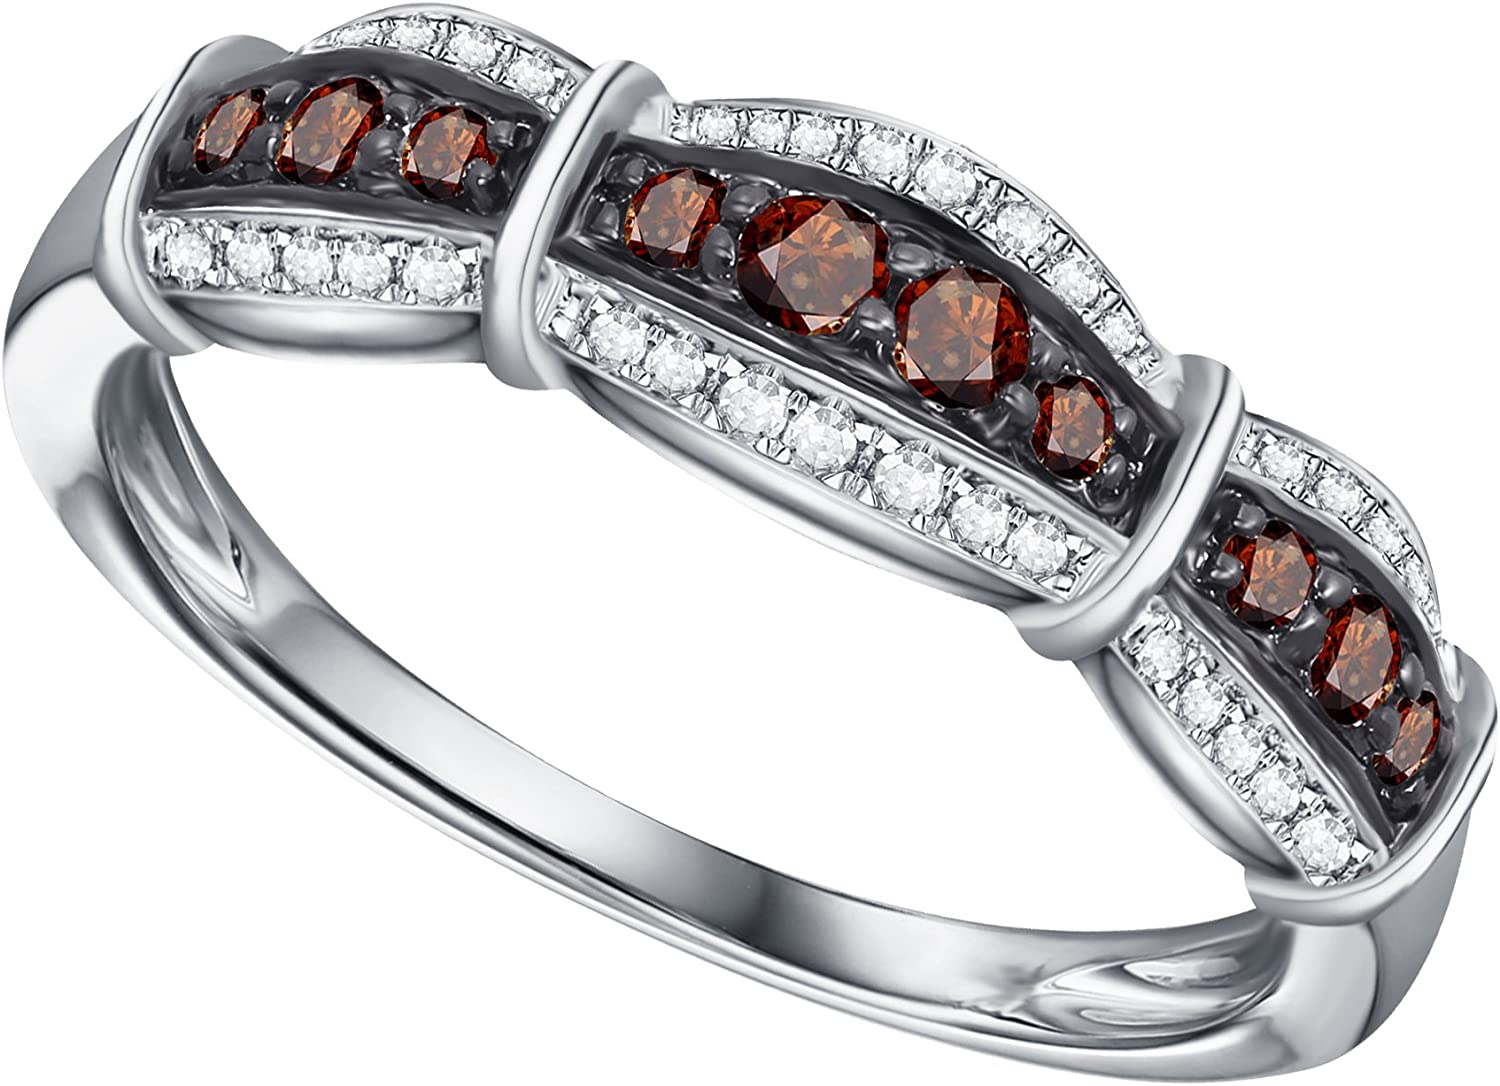 Prism Jewel 0.30Ct Round Red Diamond With Diamond Anniversary Ring